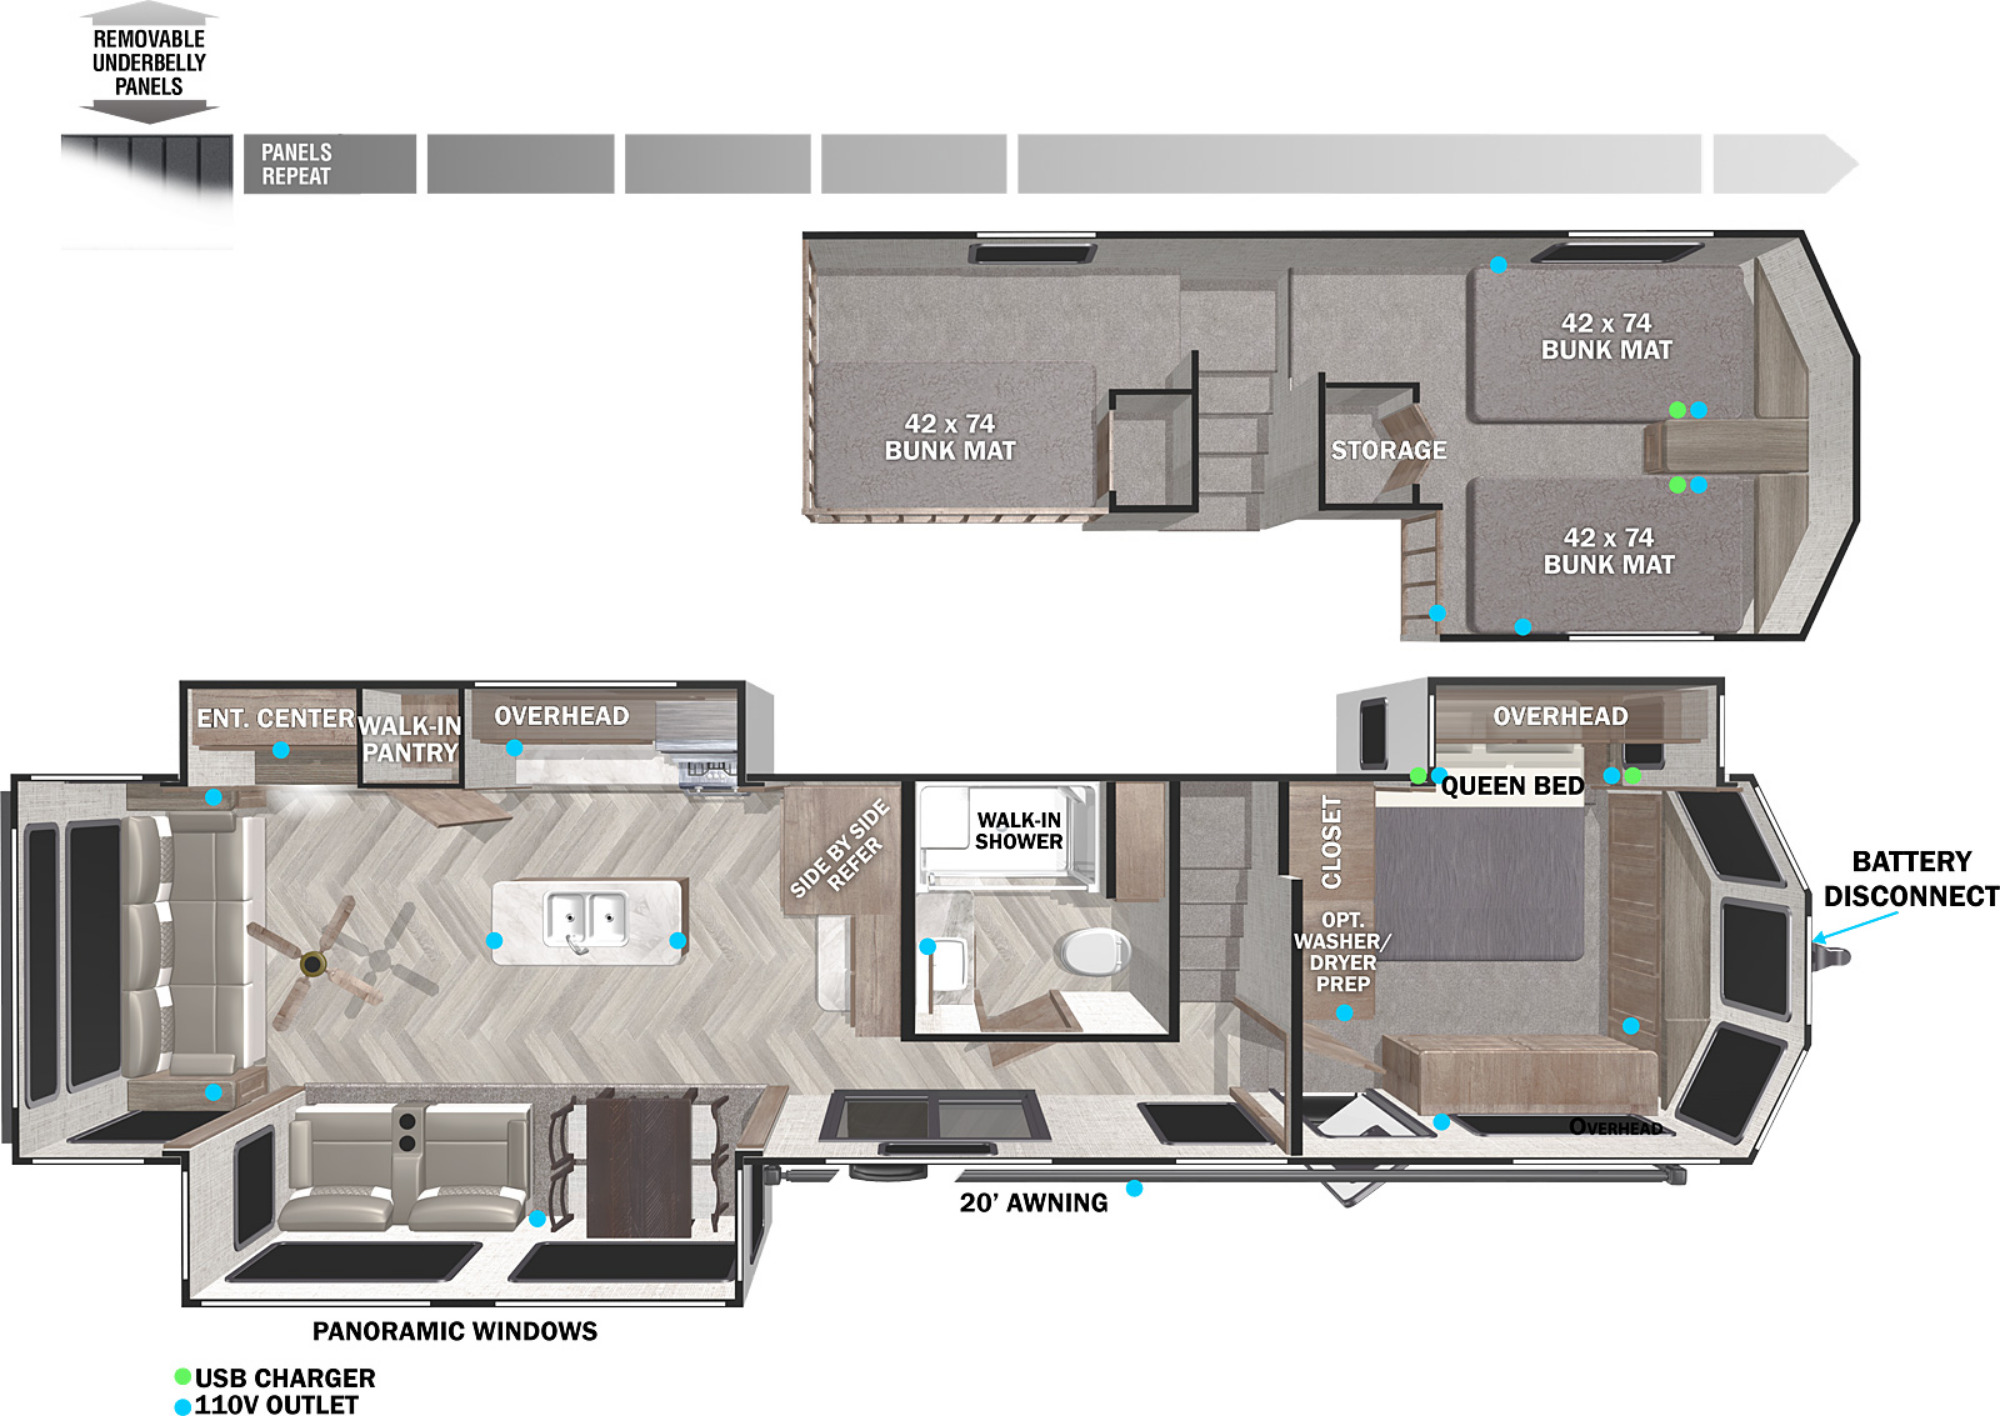 View Floor Plan for 2022 FOREST RIVER WILDWOOD GRAND LODGE 42DL